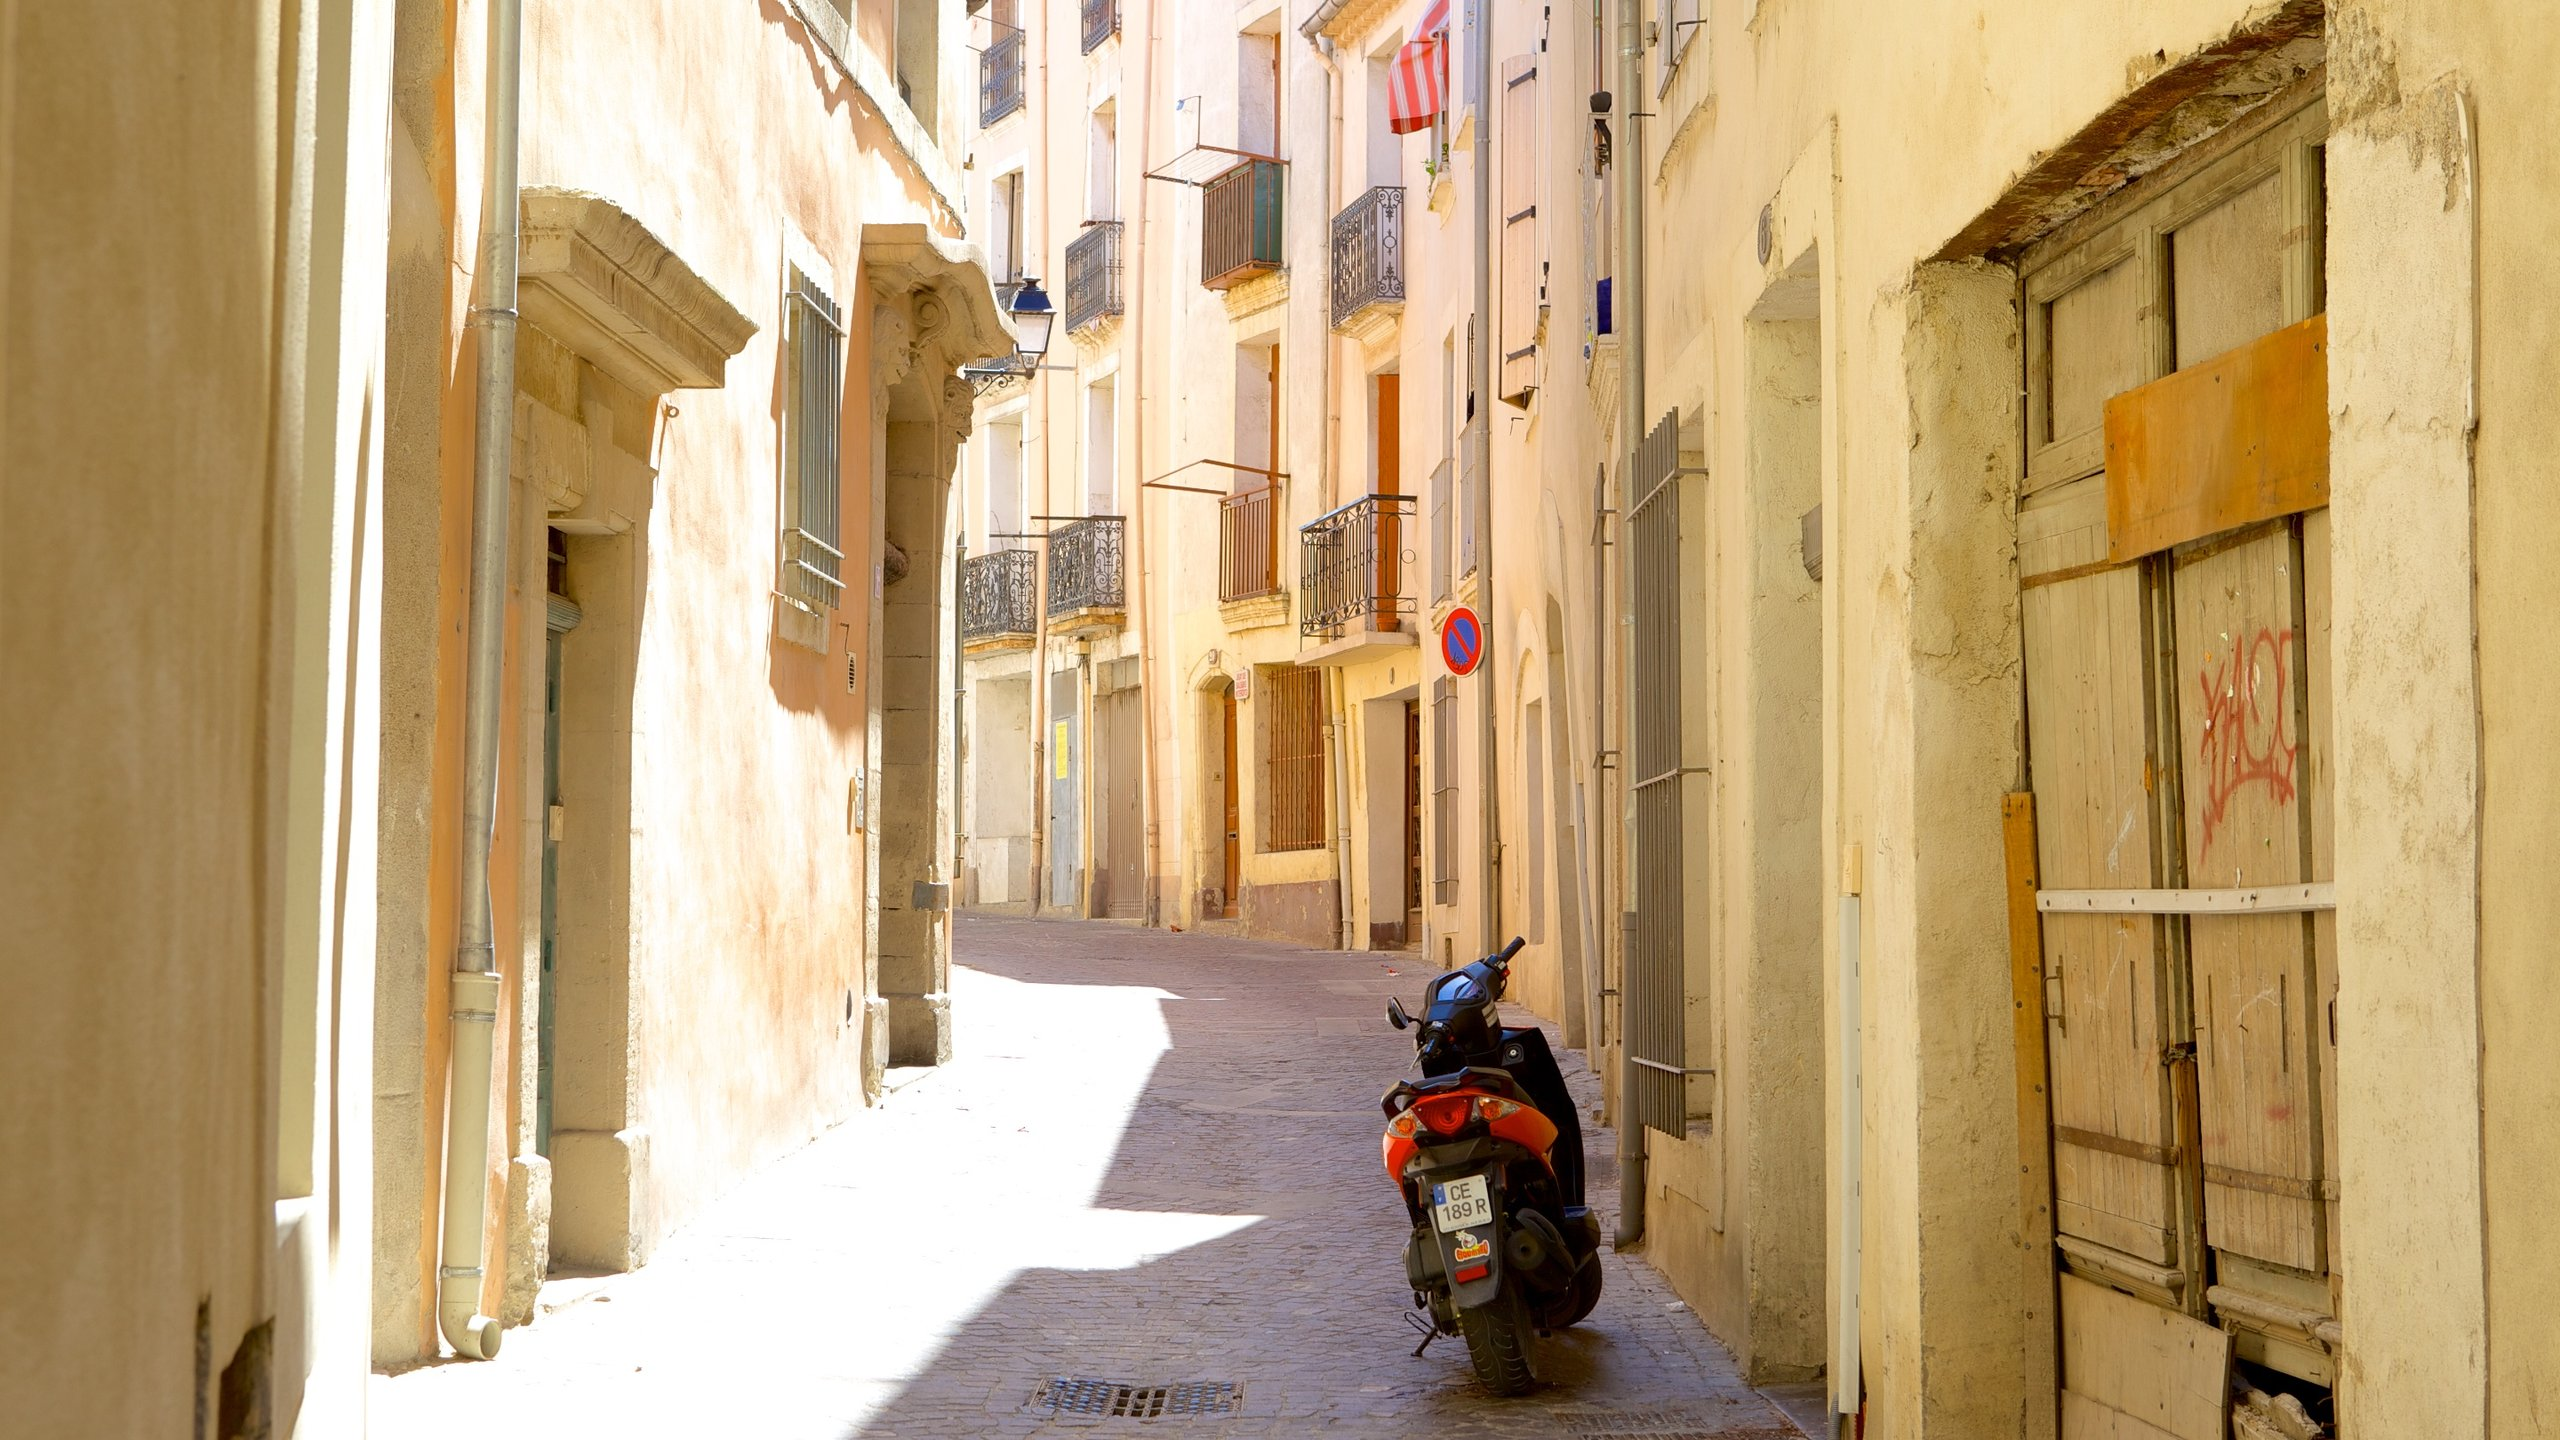 In And Out Beziers visit beziers: 2020 travel guide for beziers, occitanie